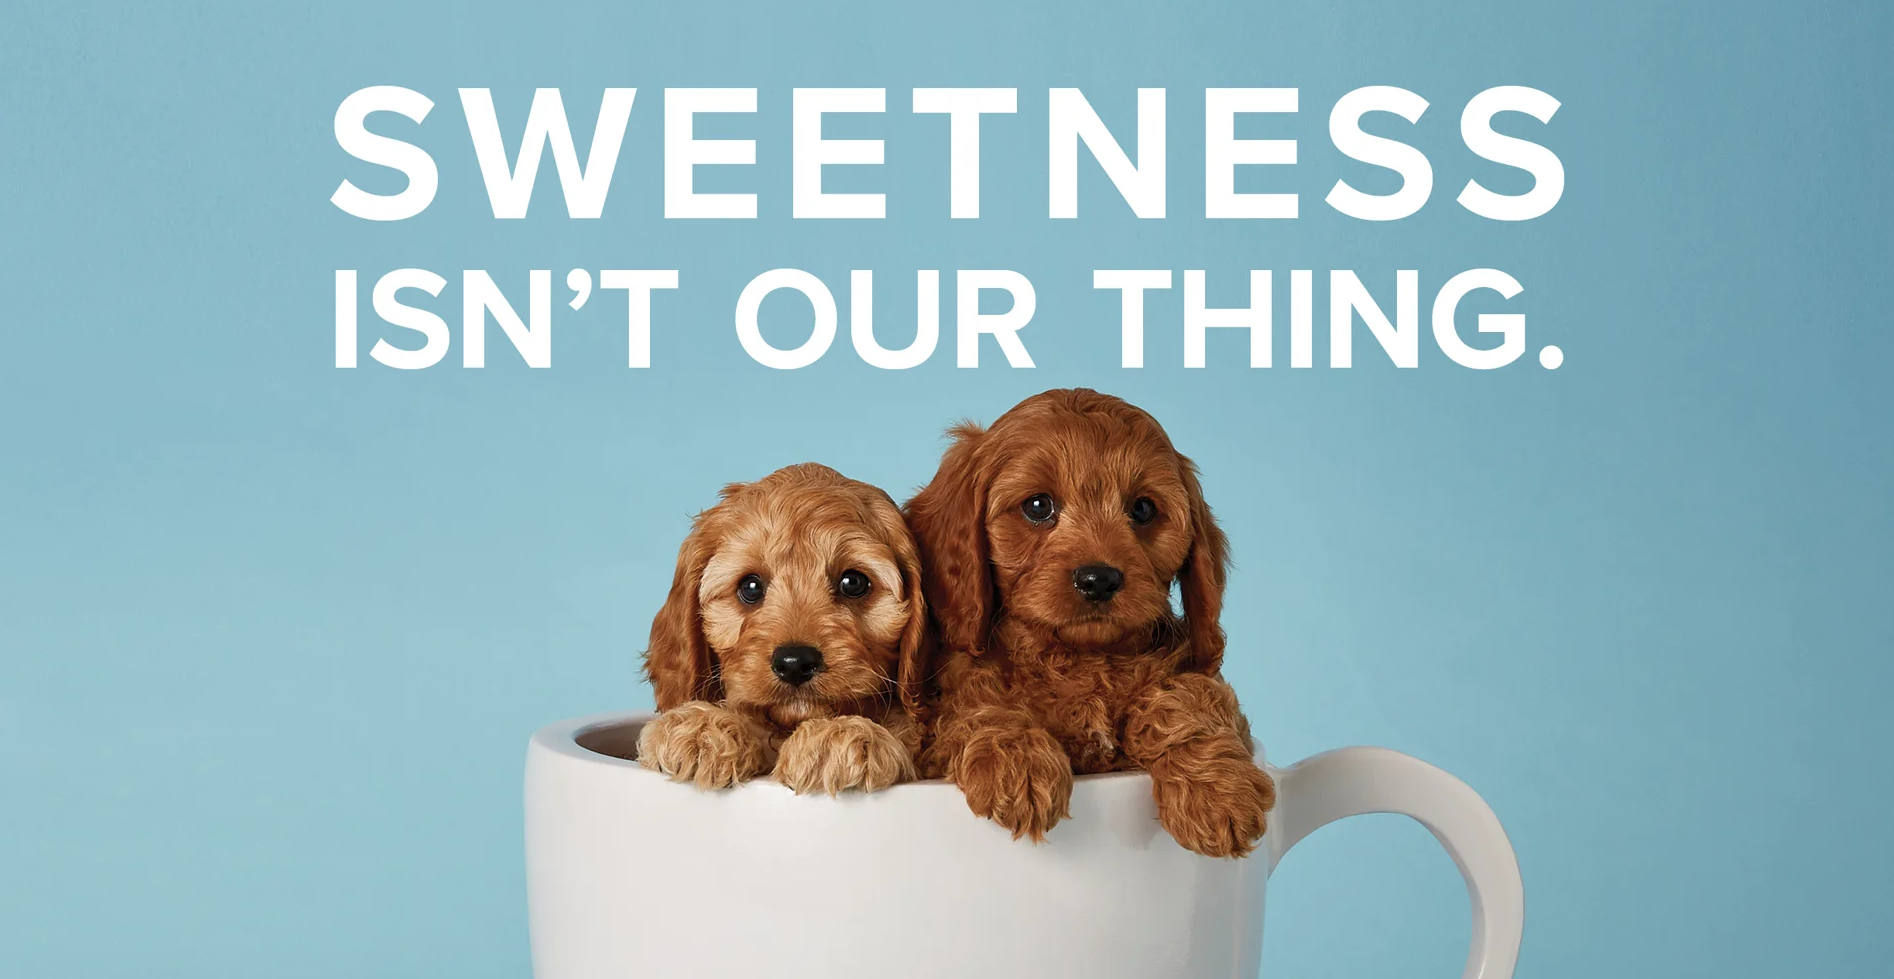 Almond Breeze Uses Puppies And Kittens To State 'sweetness Isn't Our Thing' In Ads For Its Barista Blend photo